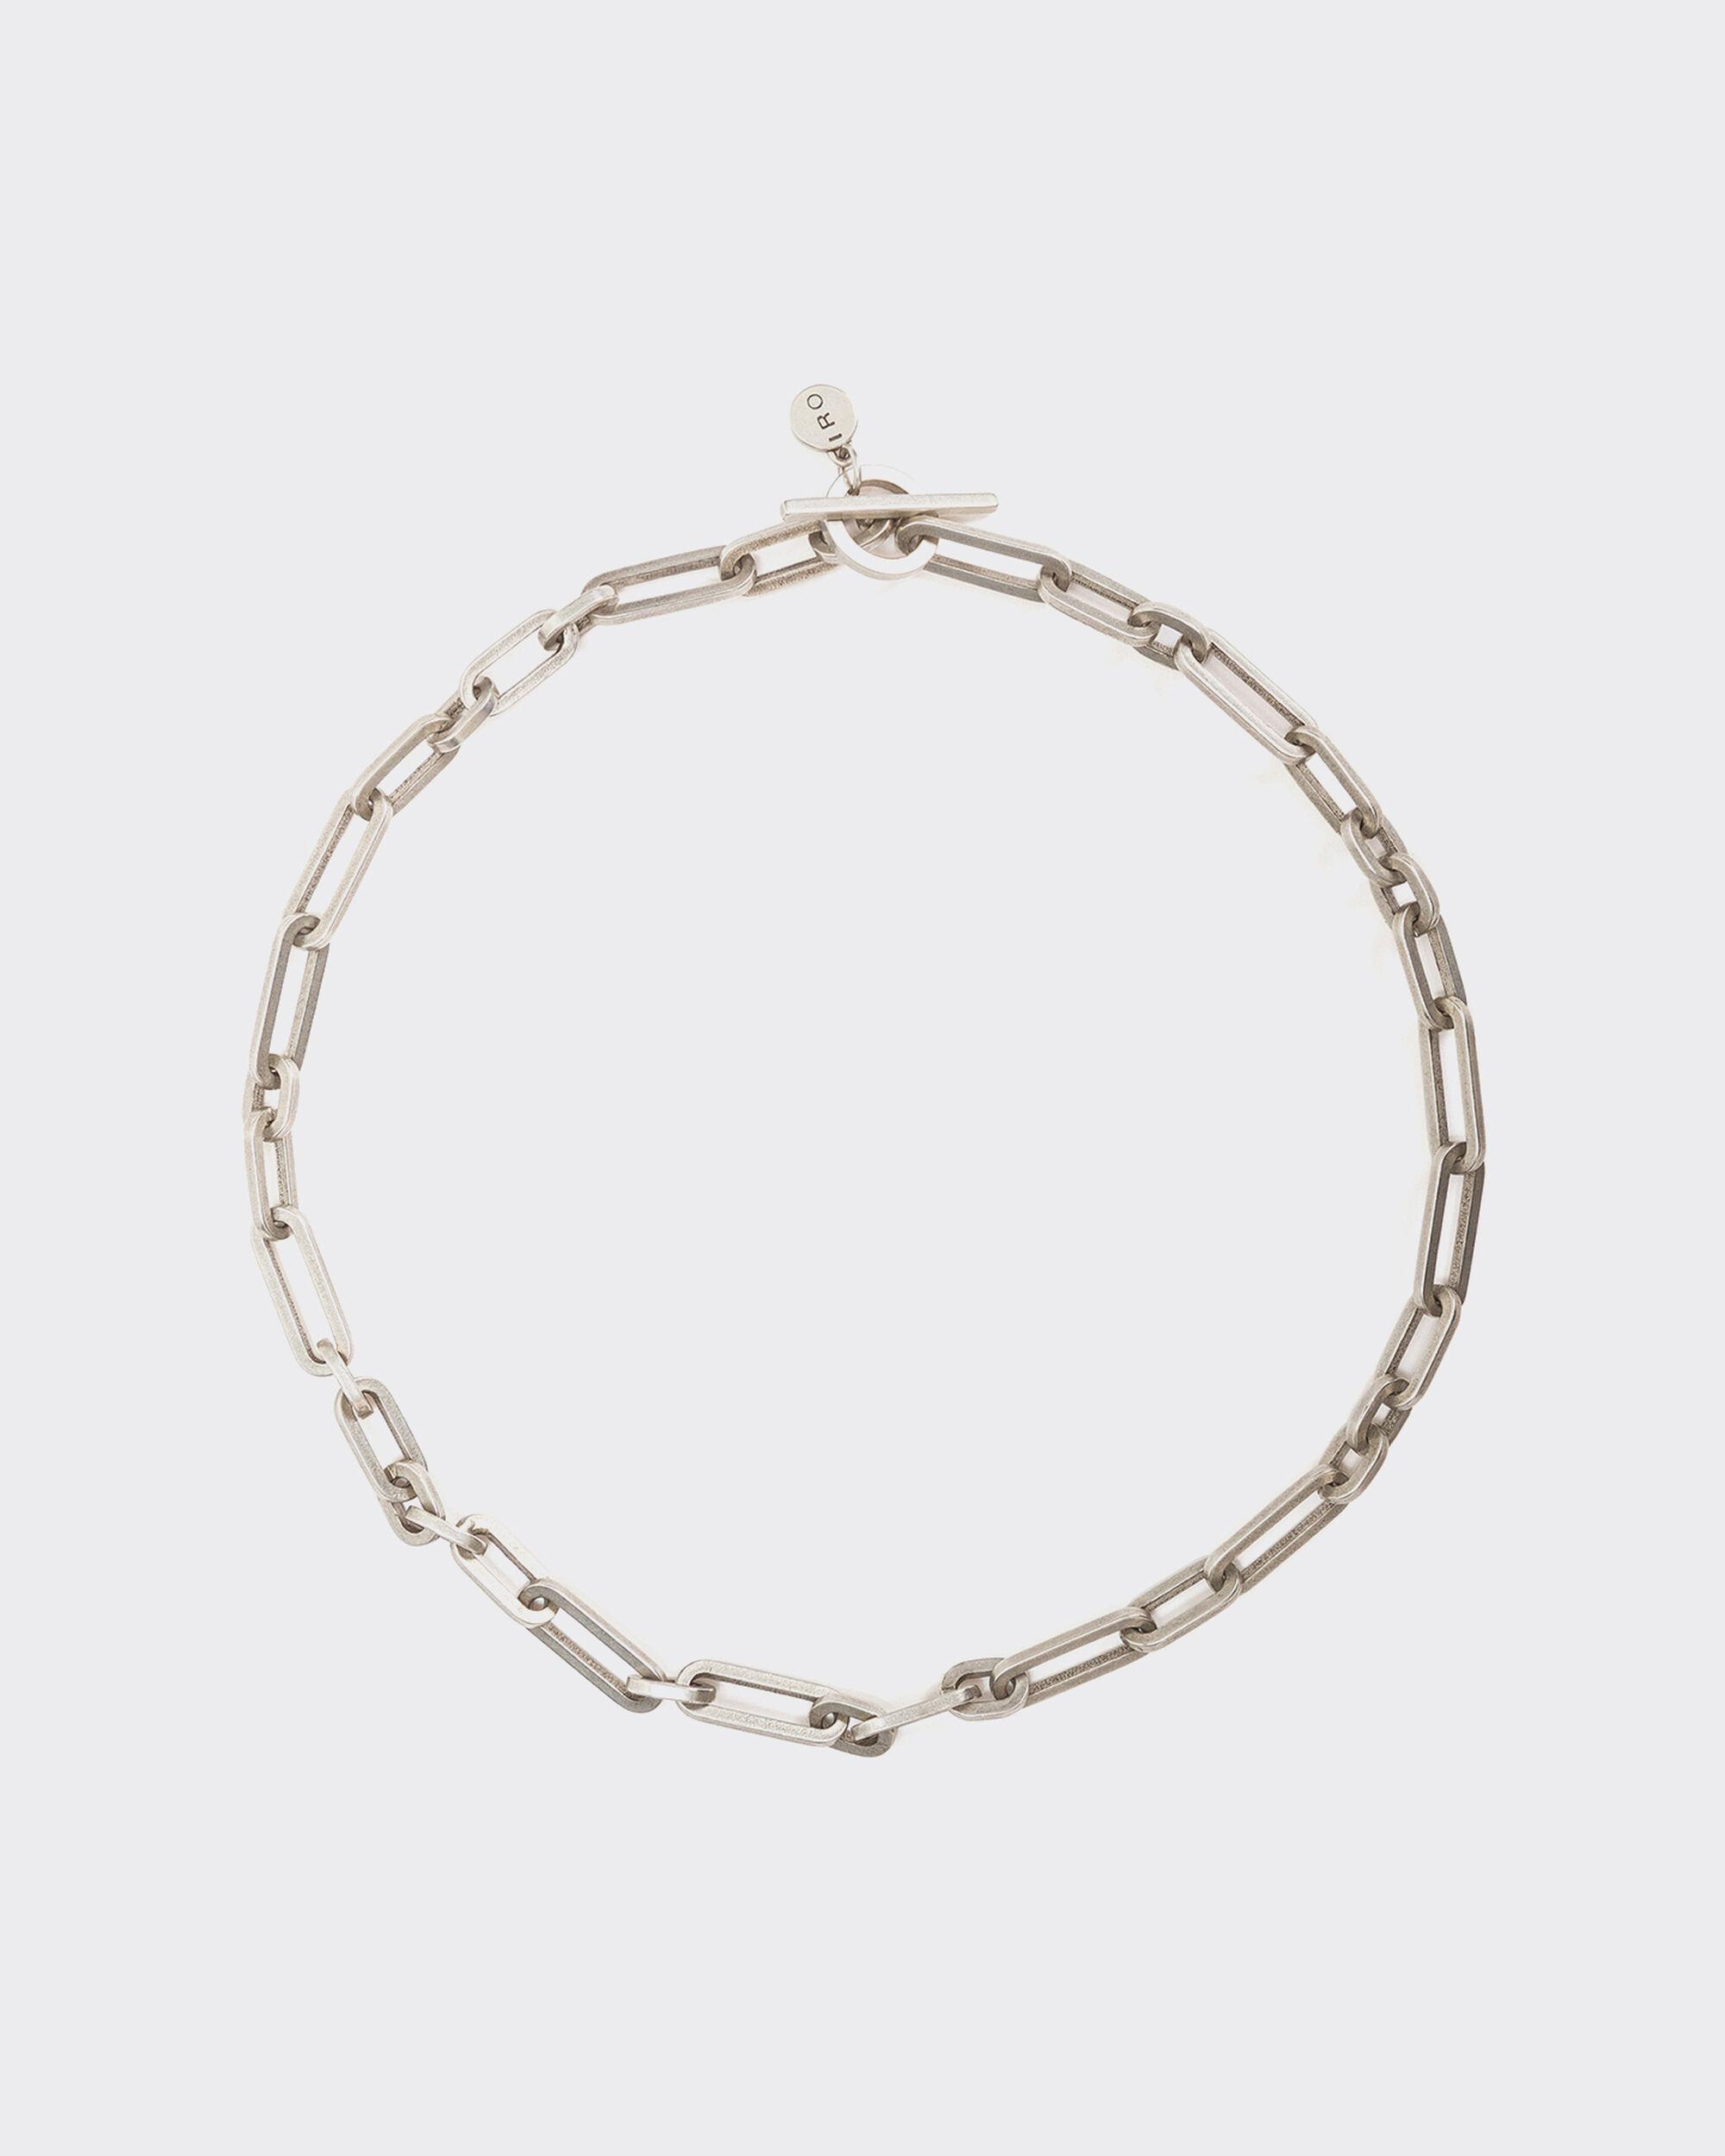 OSNIUM SILVER CHAIN NECKLACE